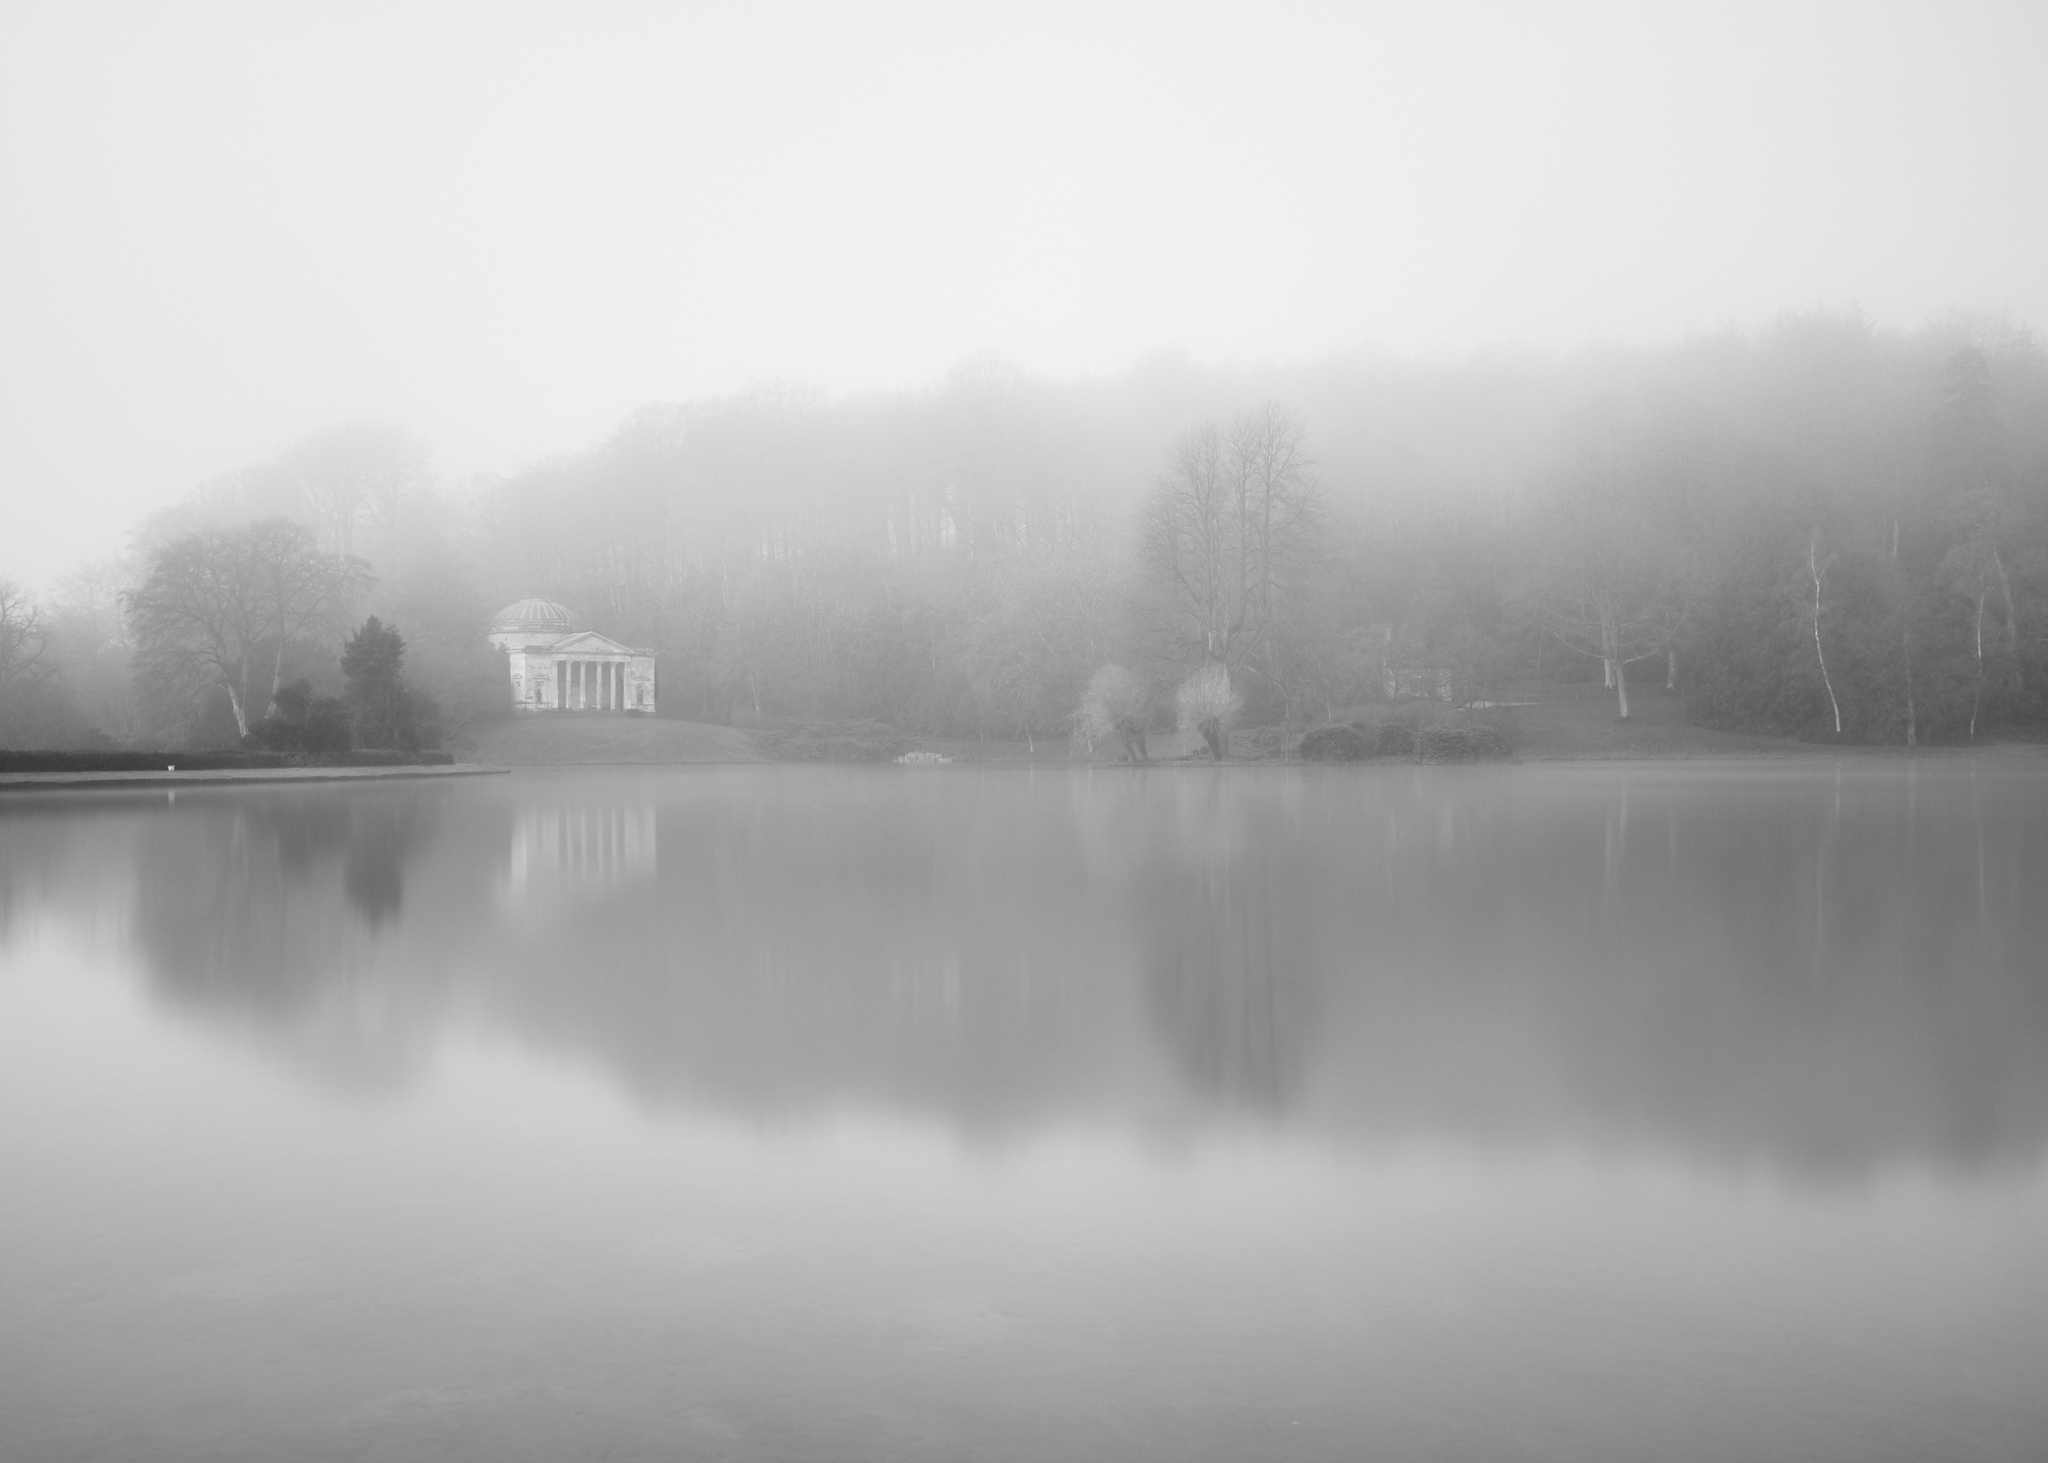 An early morning mist makes its way across the lake at Stourhead Gardens